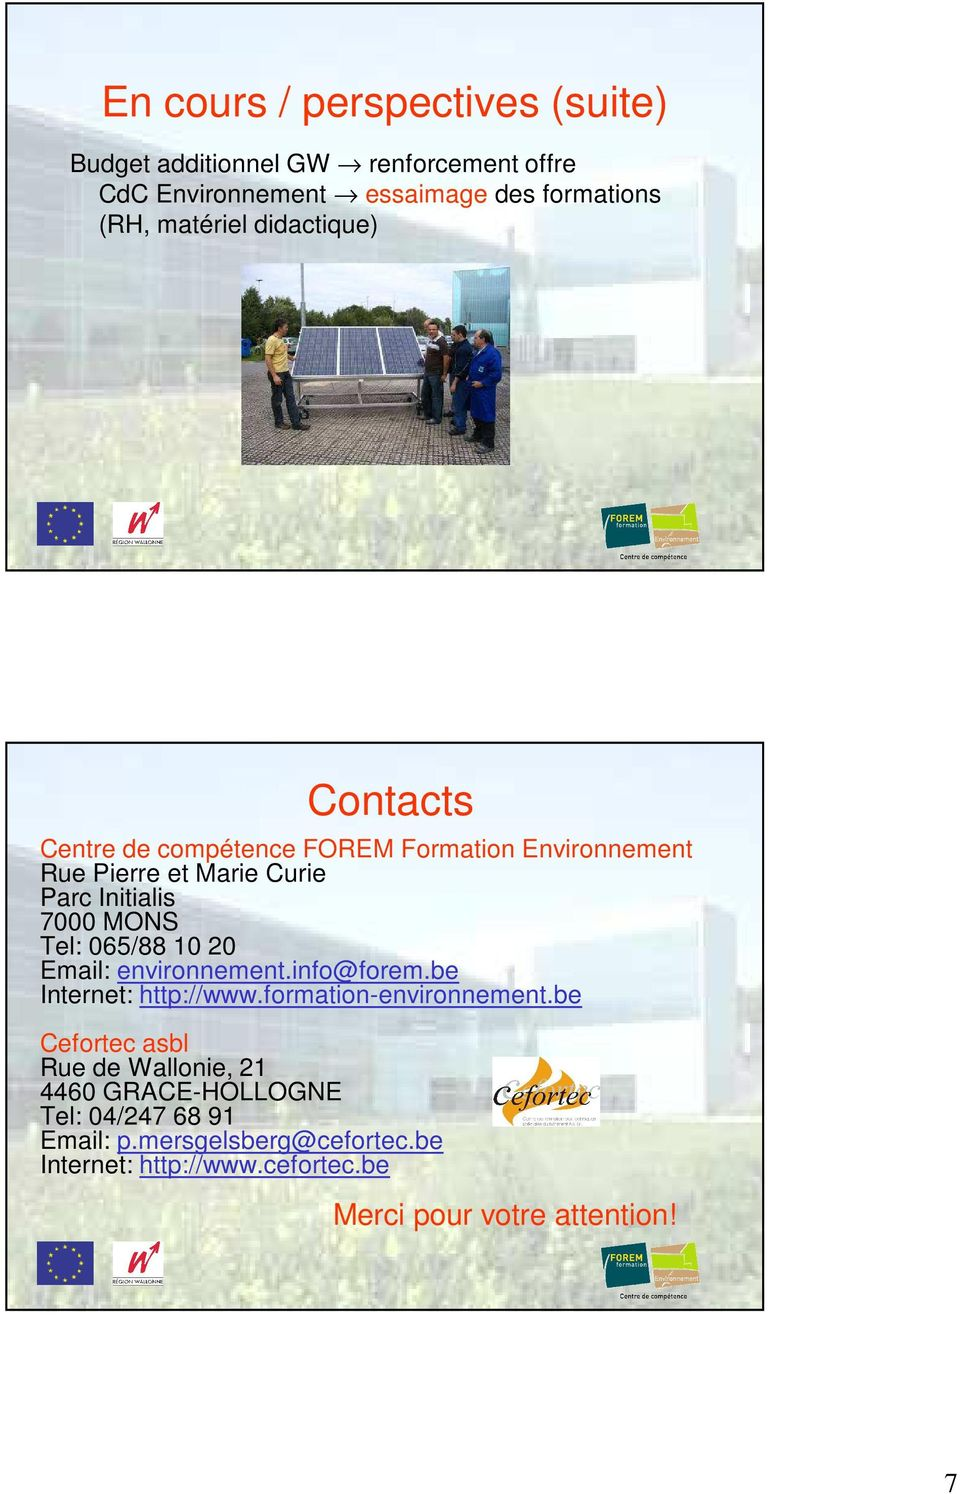 065/88 10 20 Email: environnement.info@forem.be Internet: http://www.formation-environnement.